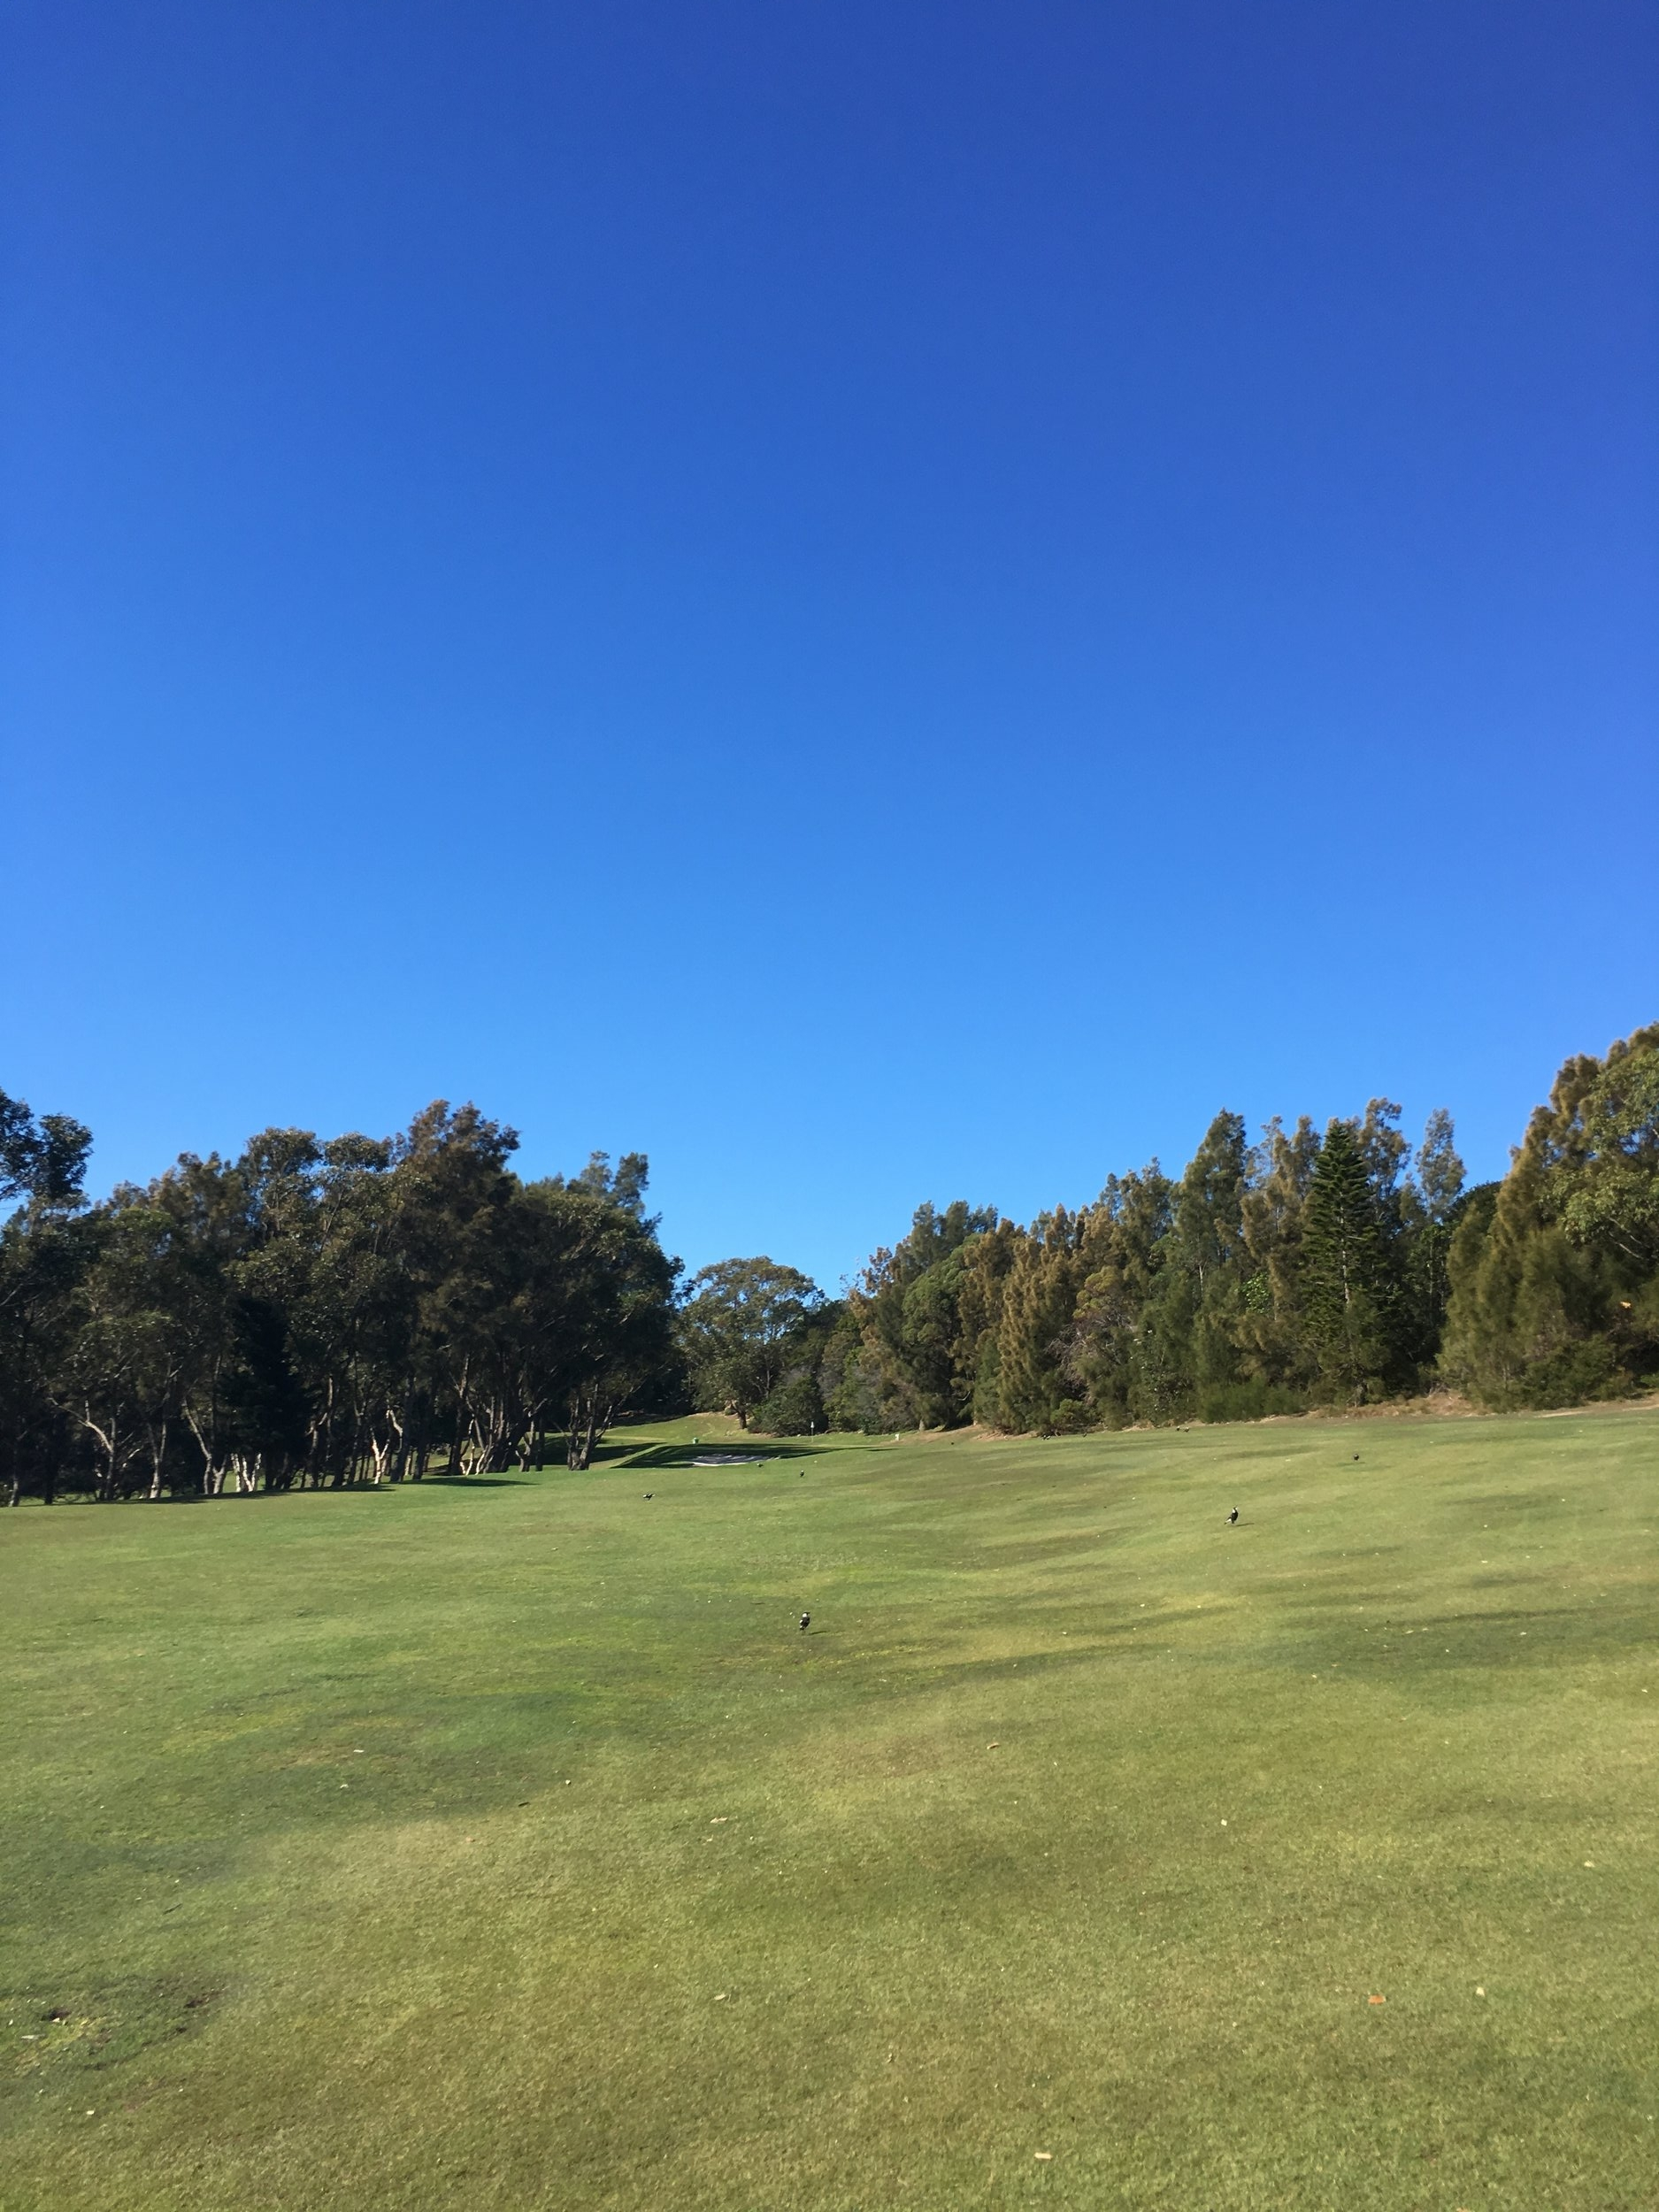 Hole Six - PAR 4 - 242 metresTricky par 4 that tempts the golfer to hit driver but beware any driver shot missing the fairway will pay big penalties. Smart play is an iron off the tee leaving a short iron to the green.